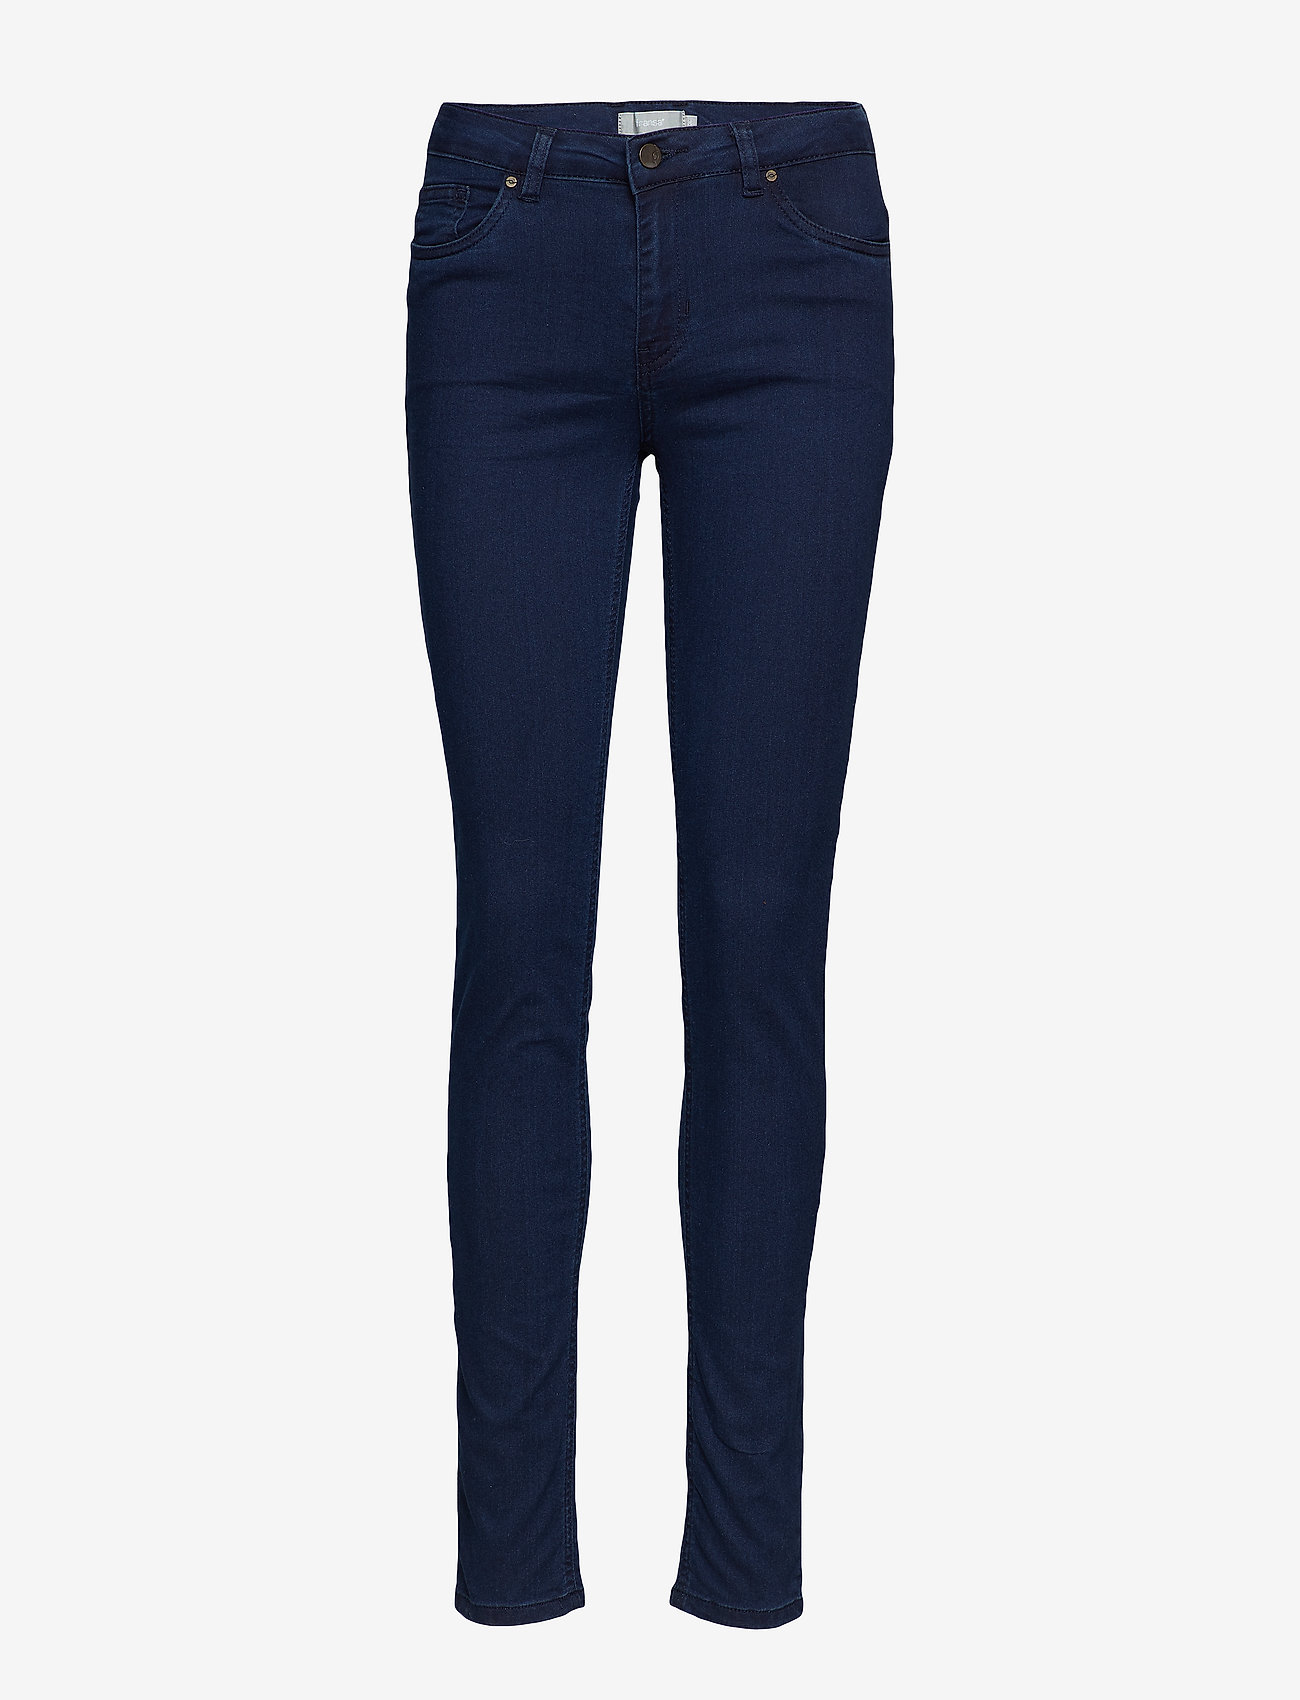 Fransa - FRZAPOWER 1 Pants - skinny jeans - glossy blue denim - 0